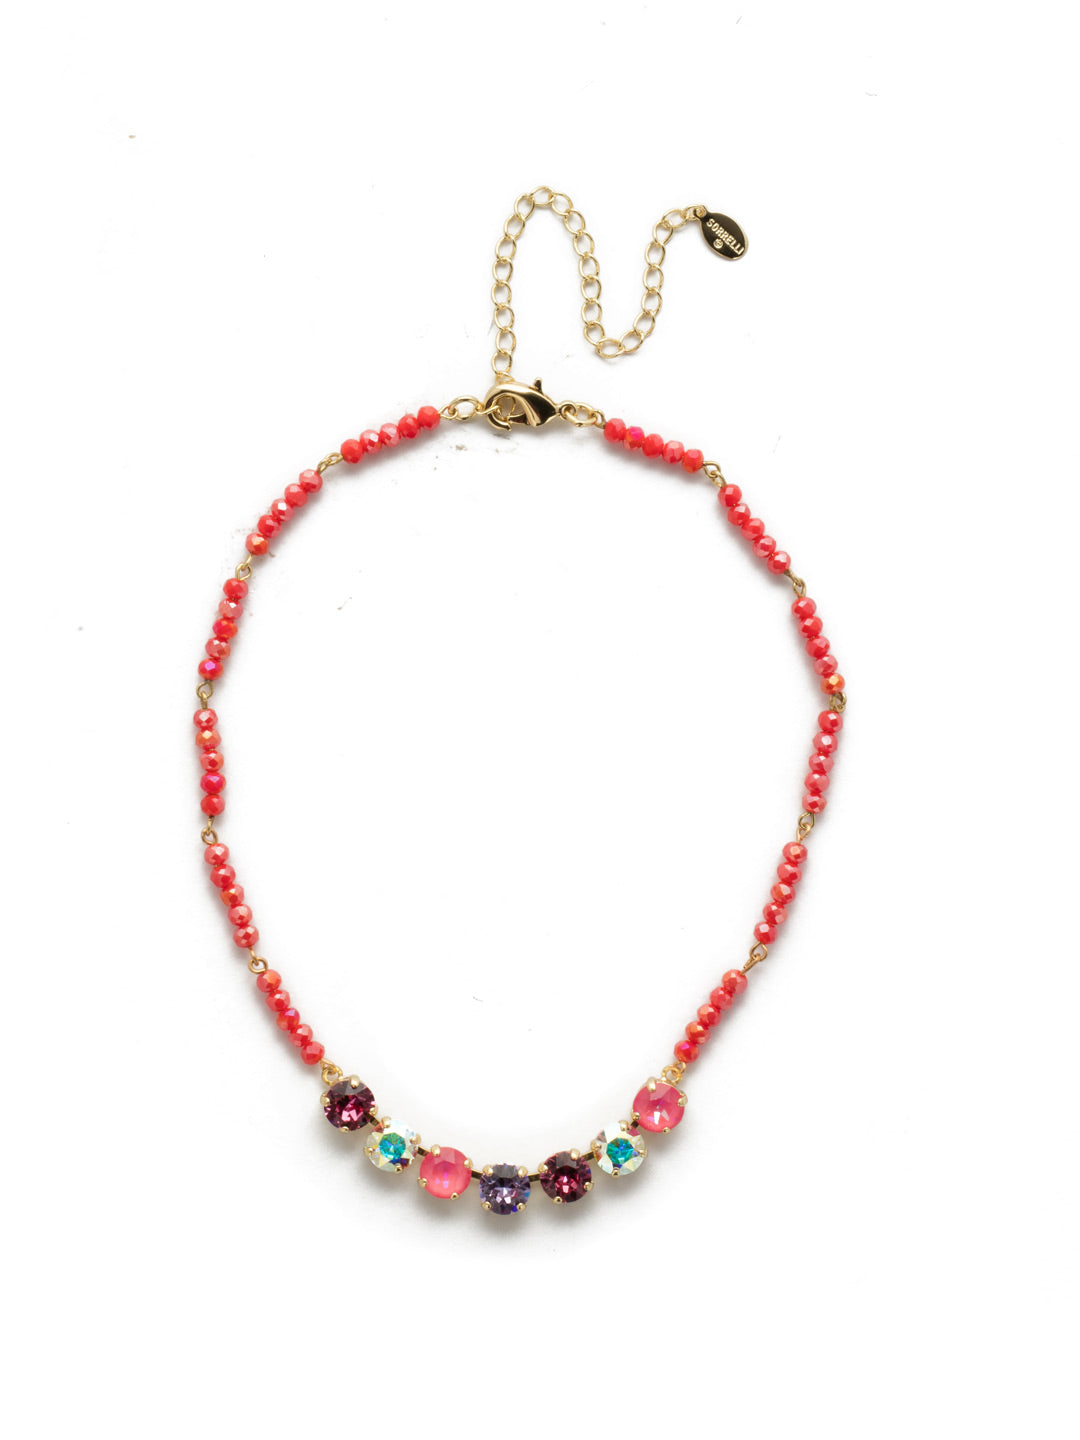 Aviva Tennis Necklace - NEK31BGISS